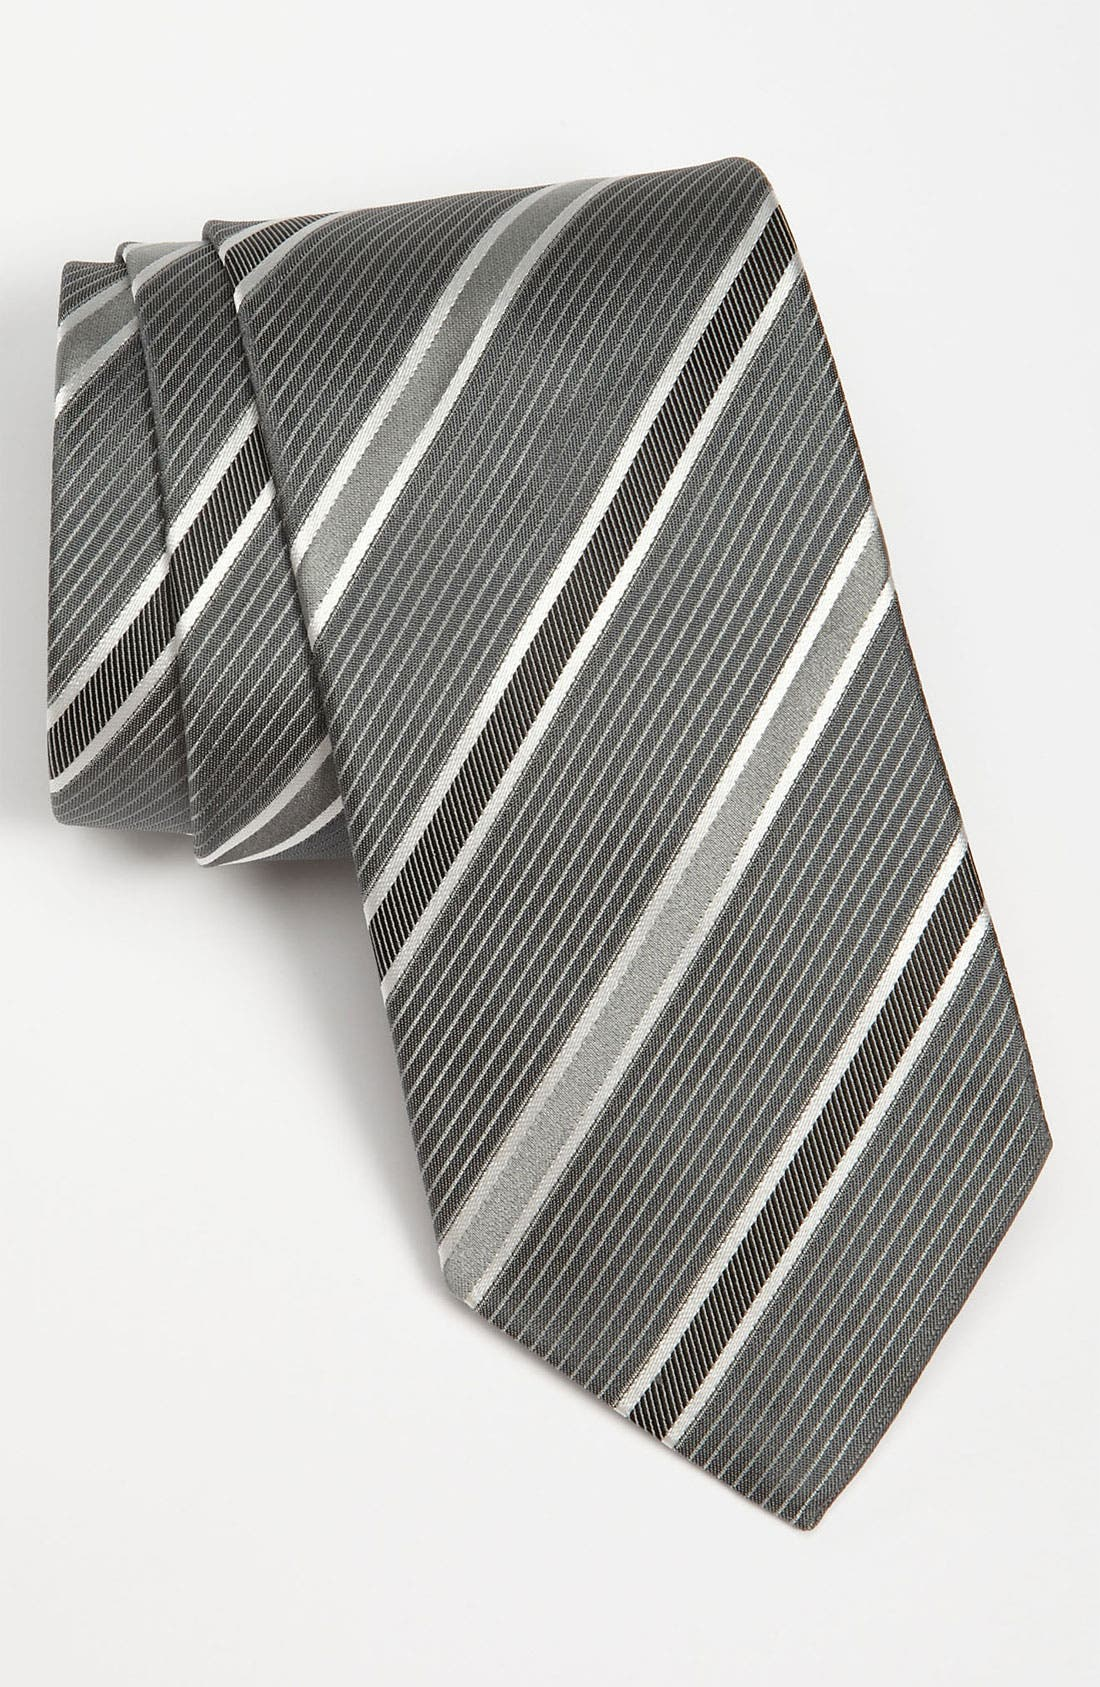 HUGO BOSS Woven Silk Tie,                             Main thumbnail 1, color,